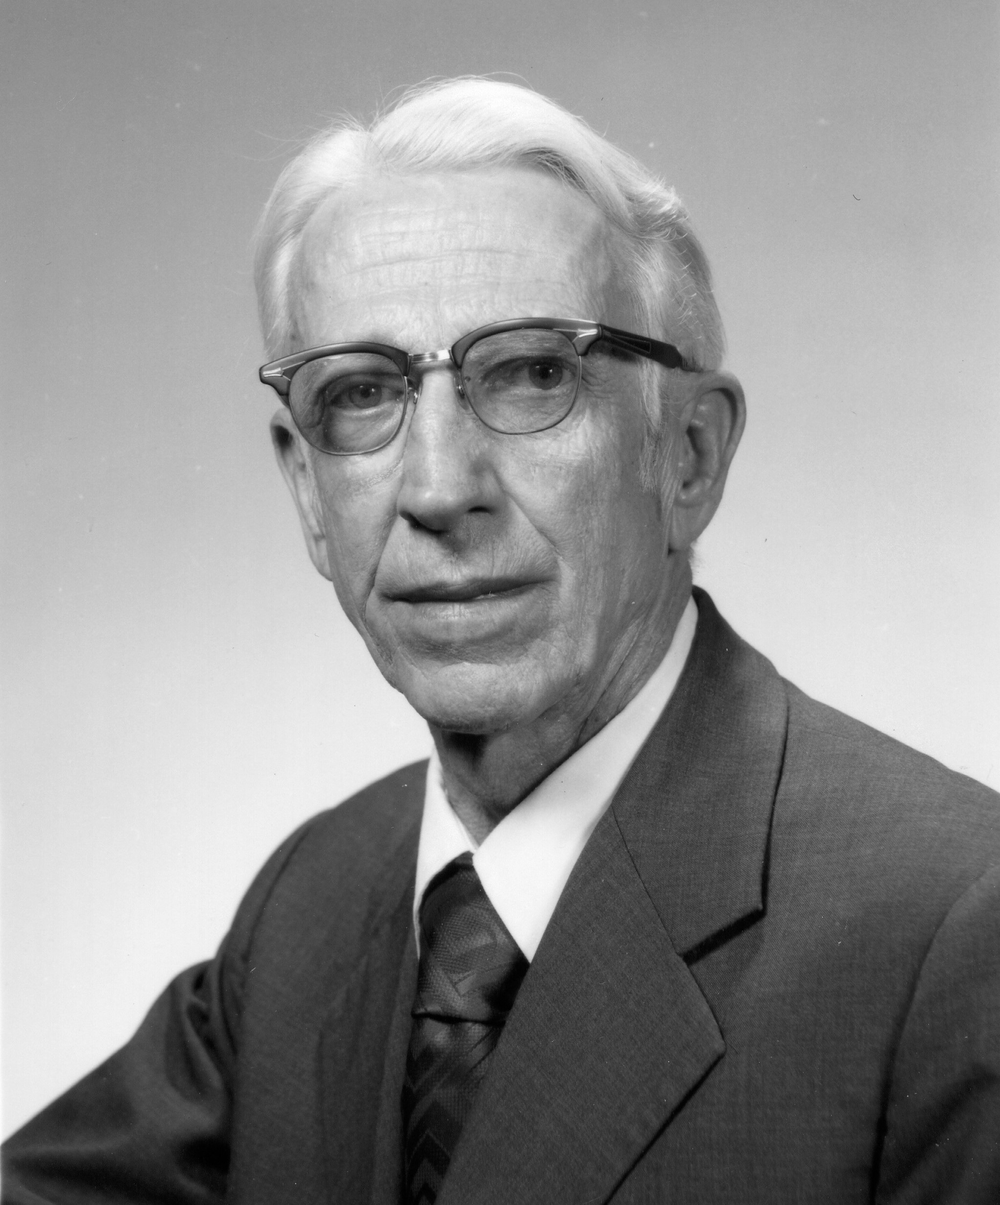 black and white headshot of Dr. Harold Snyder